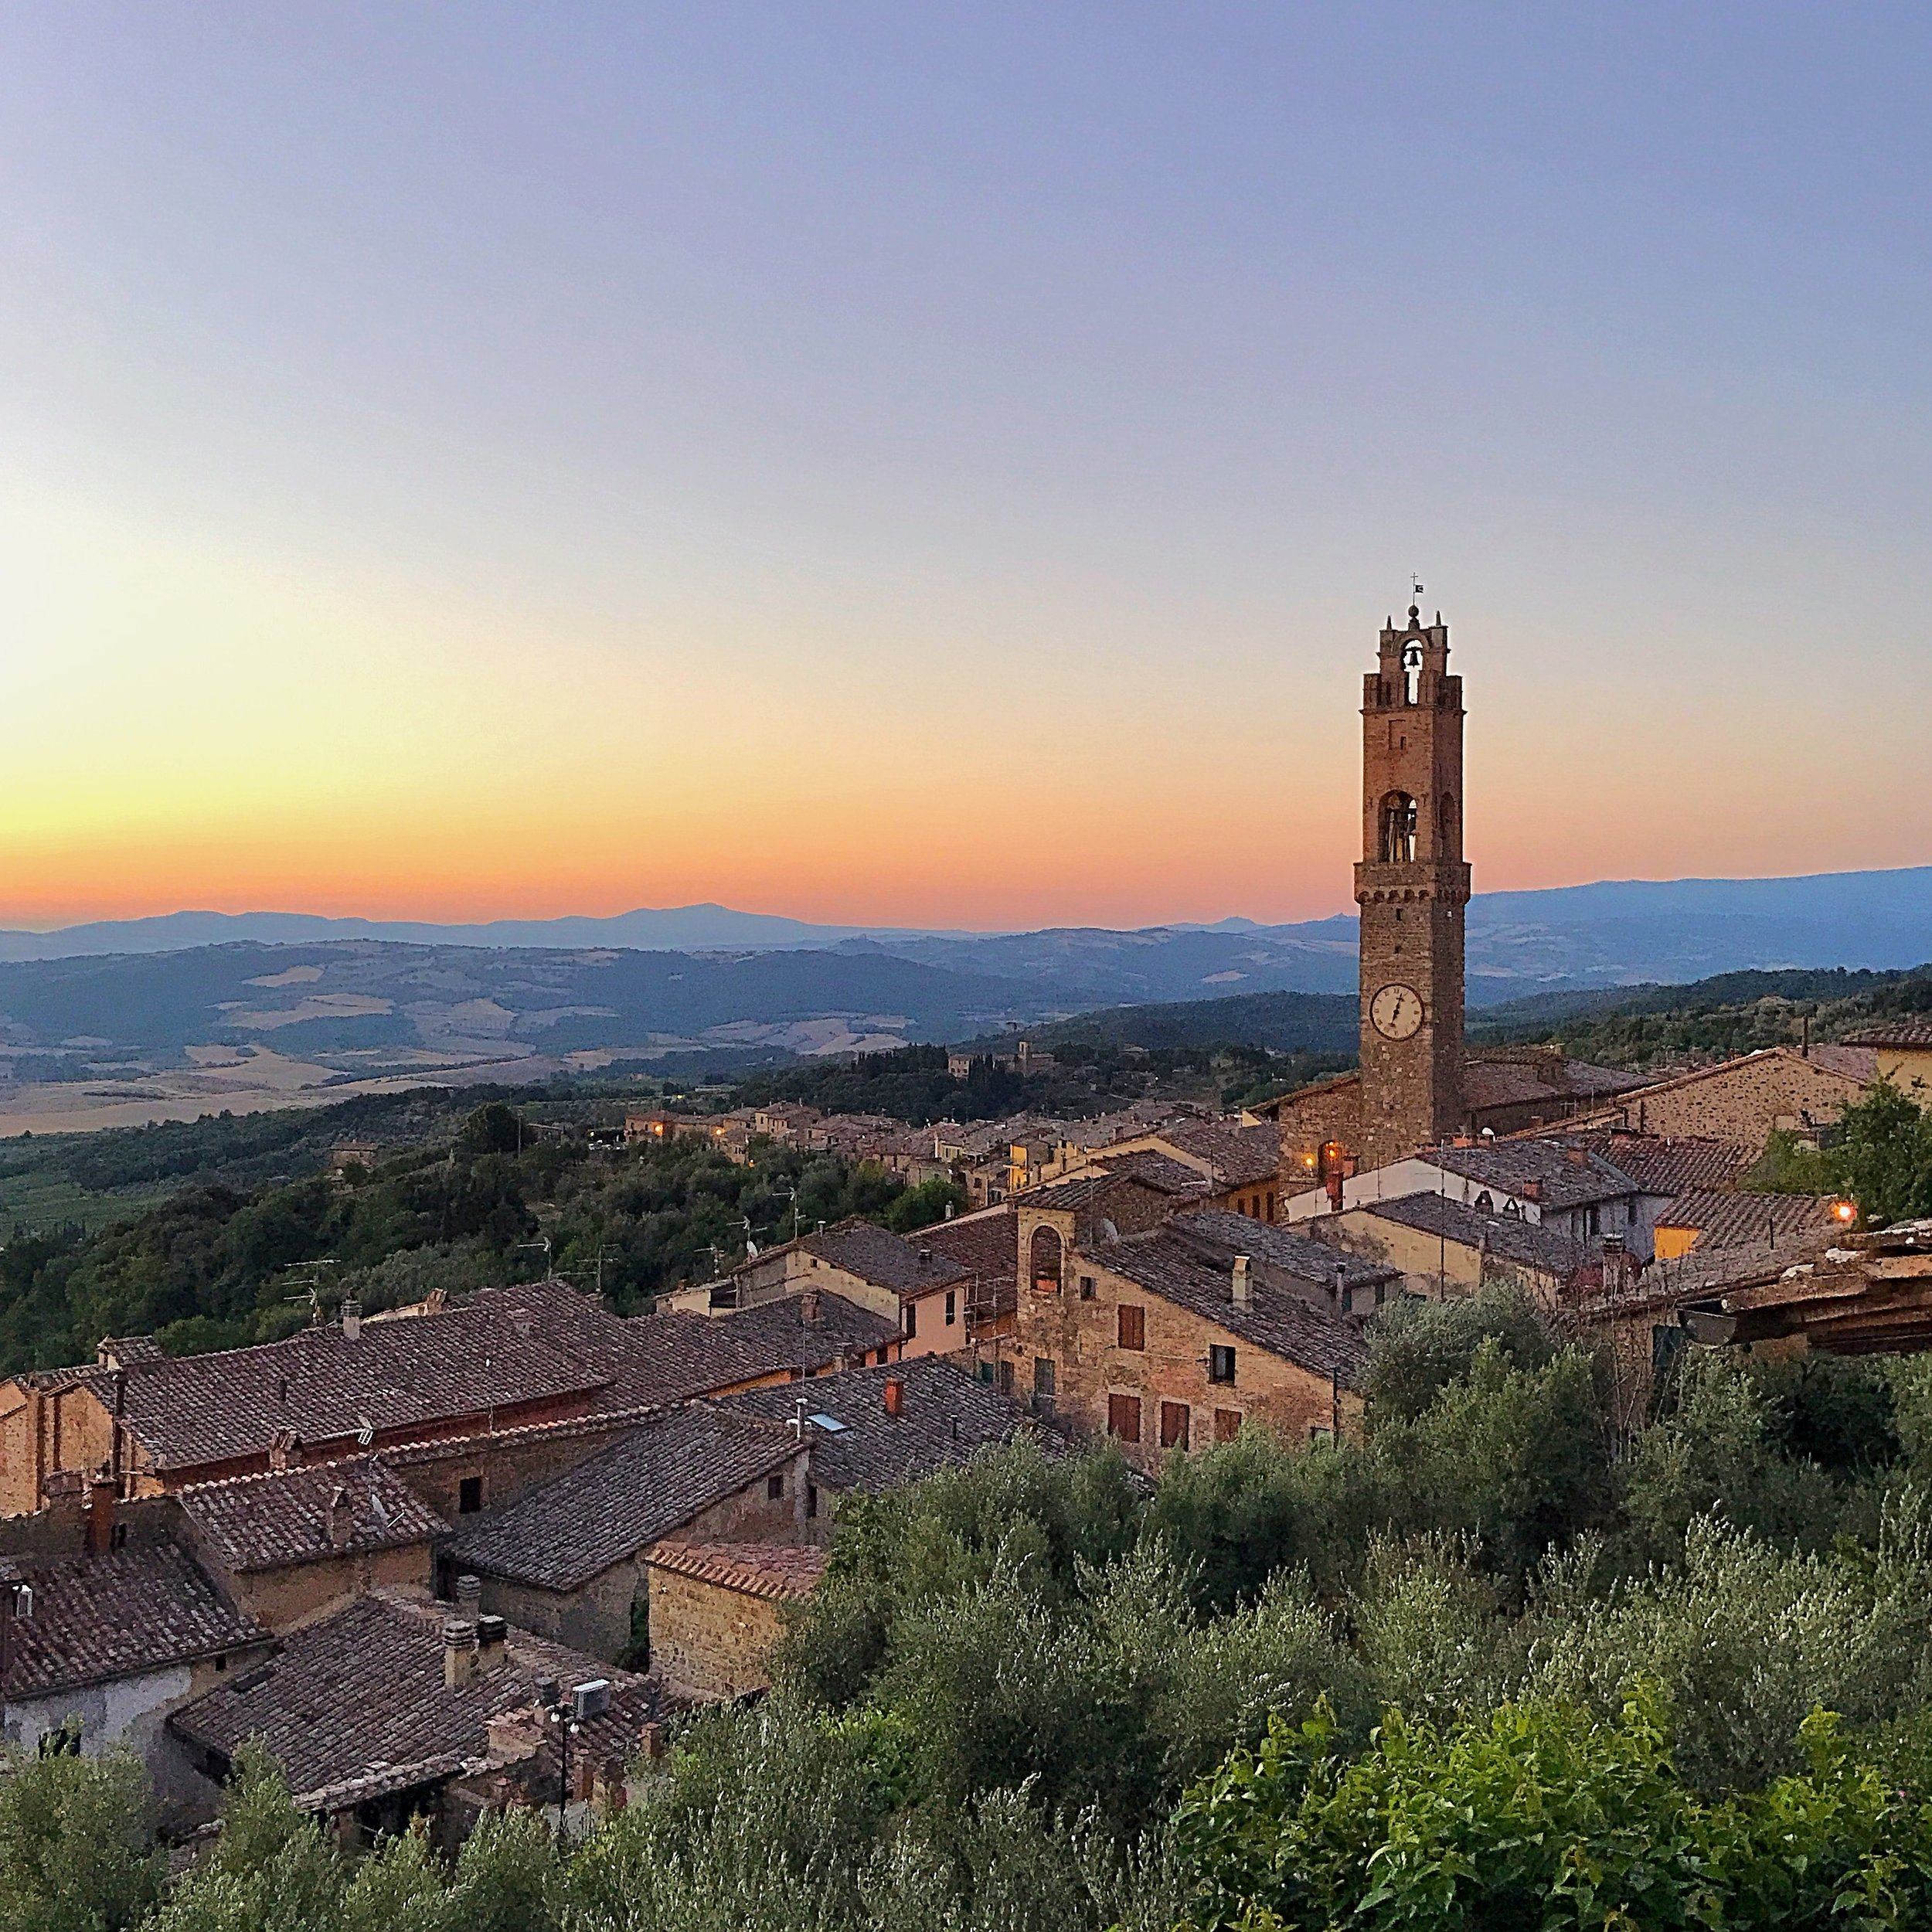 Tuscany sunrise from the town of Montalcino.